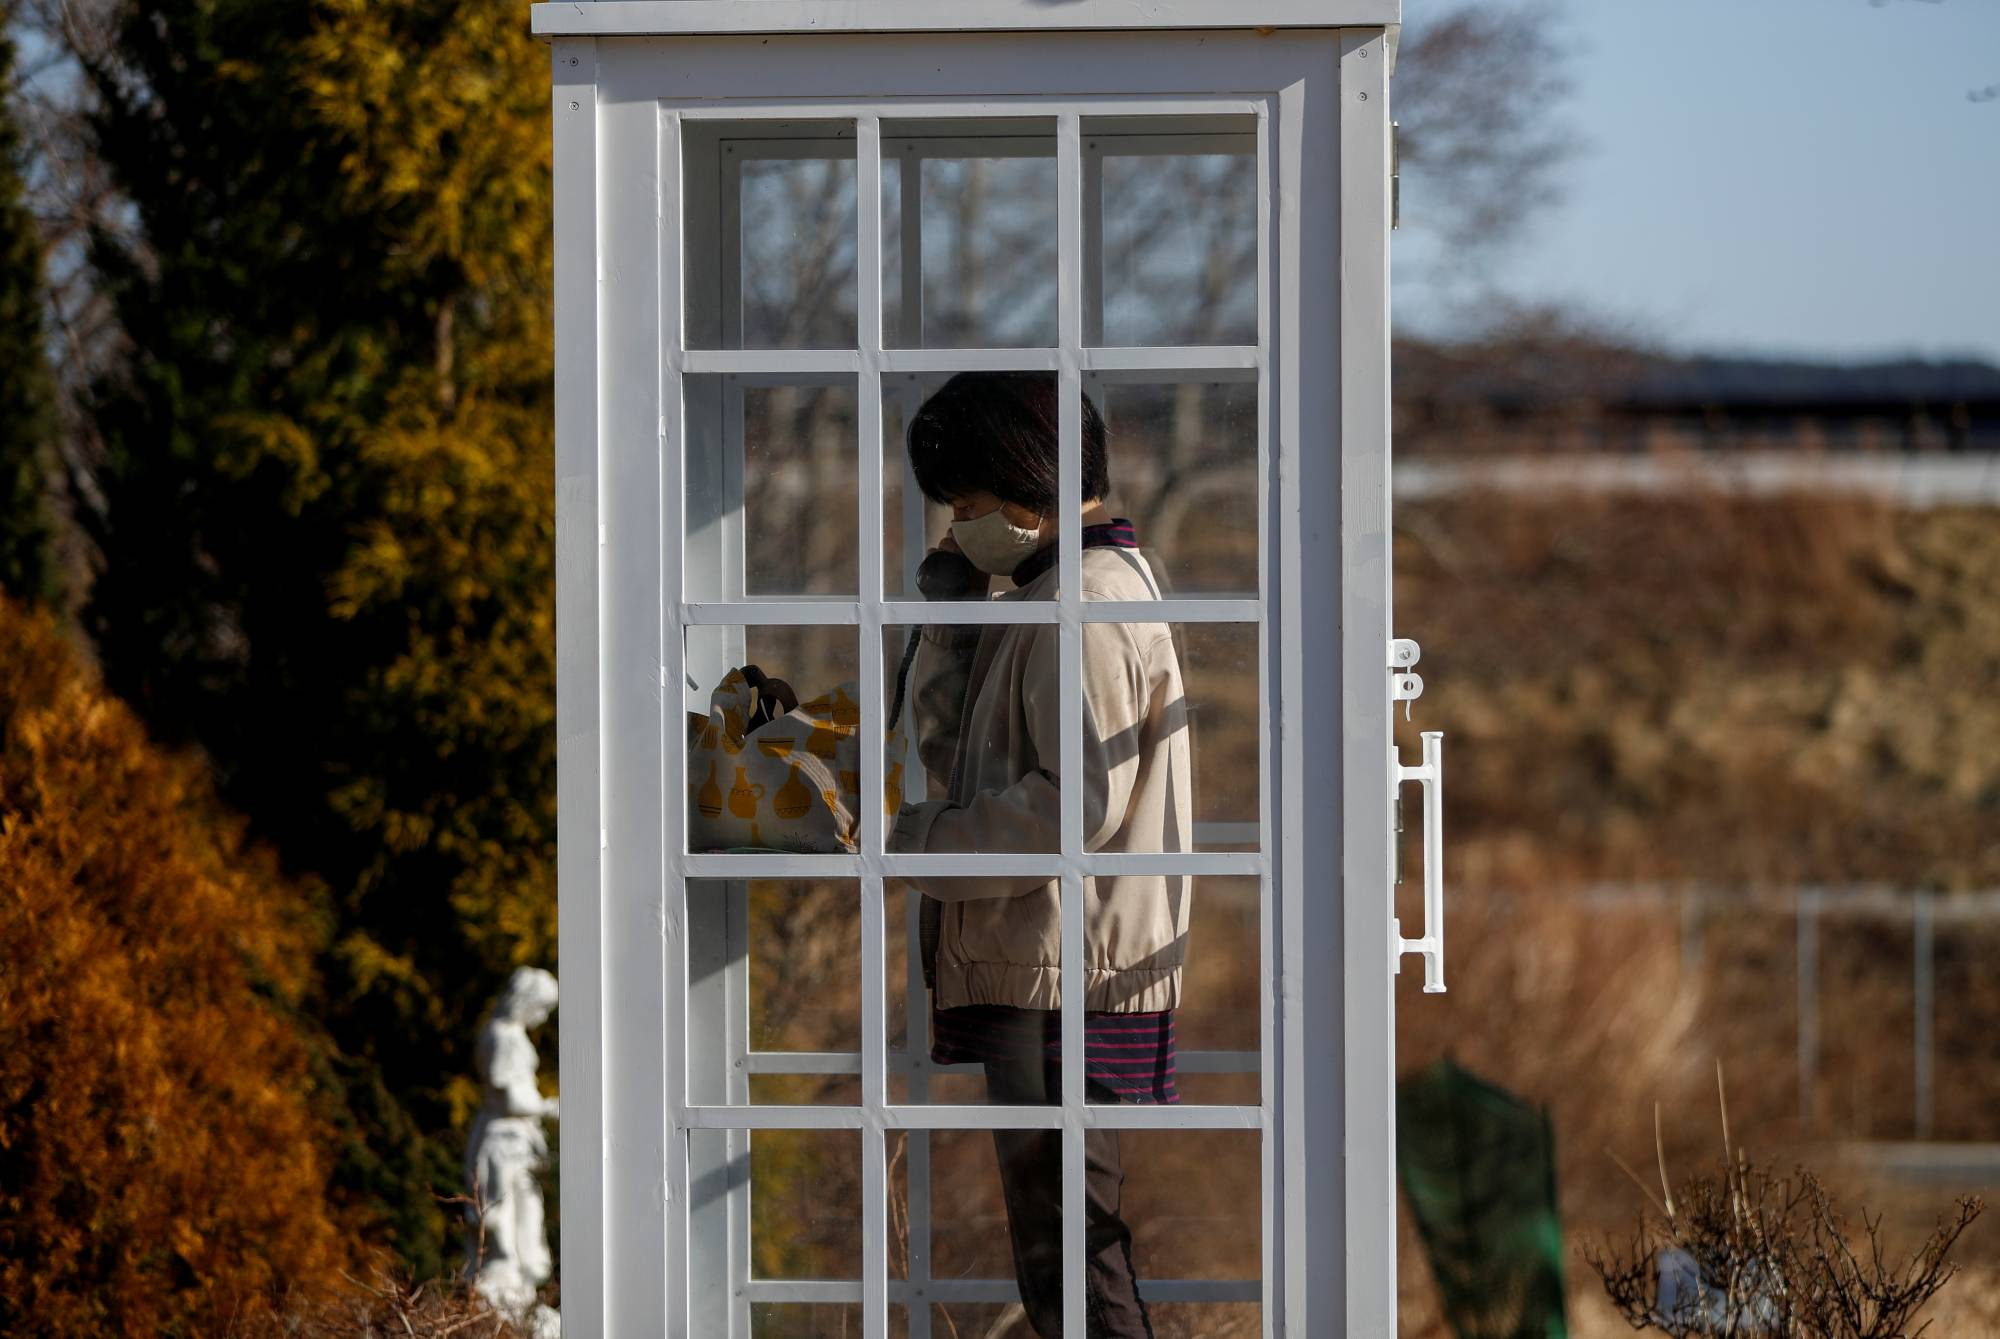 A woman from Ofunato, Iwate Prefecture, who lost her junior high school classmates in the March 11, 2011 earthquake and tsunami, calls her late friends from 'the phone of the wind.' | REUTERS